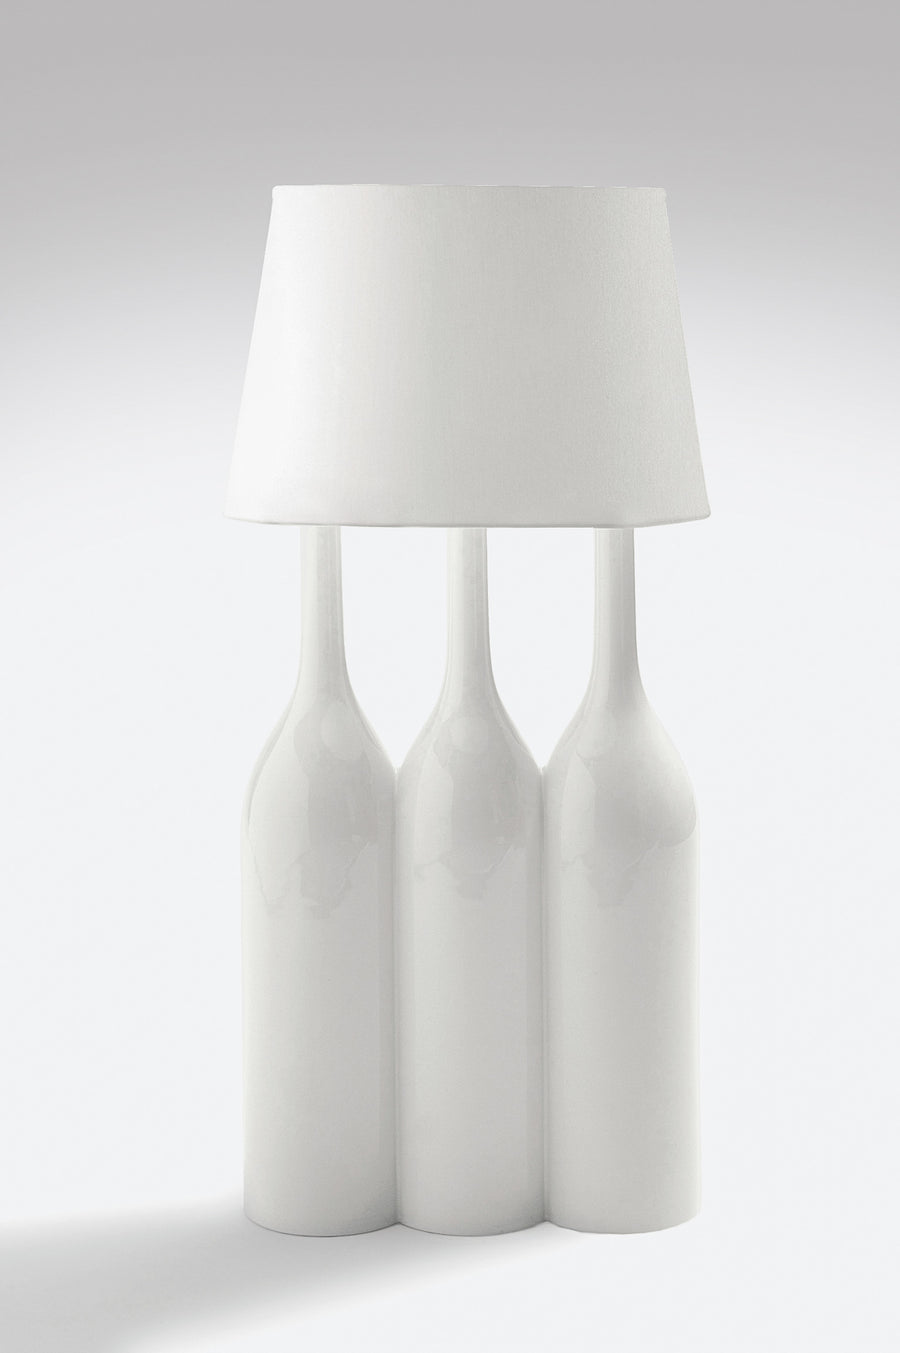 CHAMPAGNE À DEUX Table Lamps by Sam Baron for Bosa - DUPLEX DESIGN